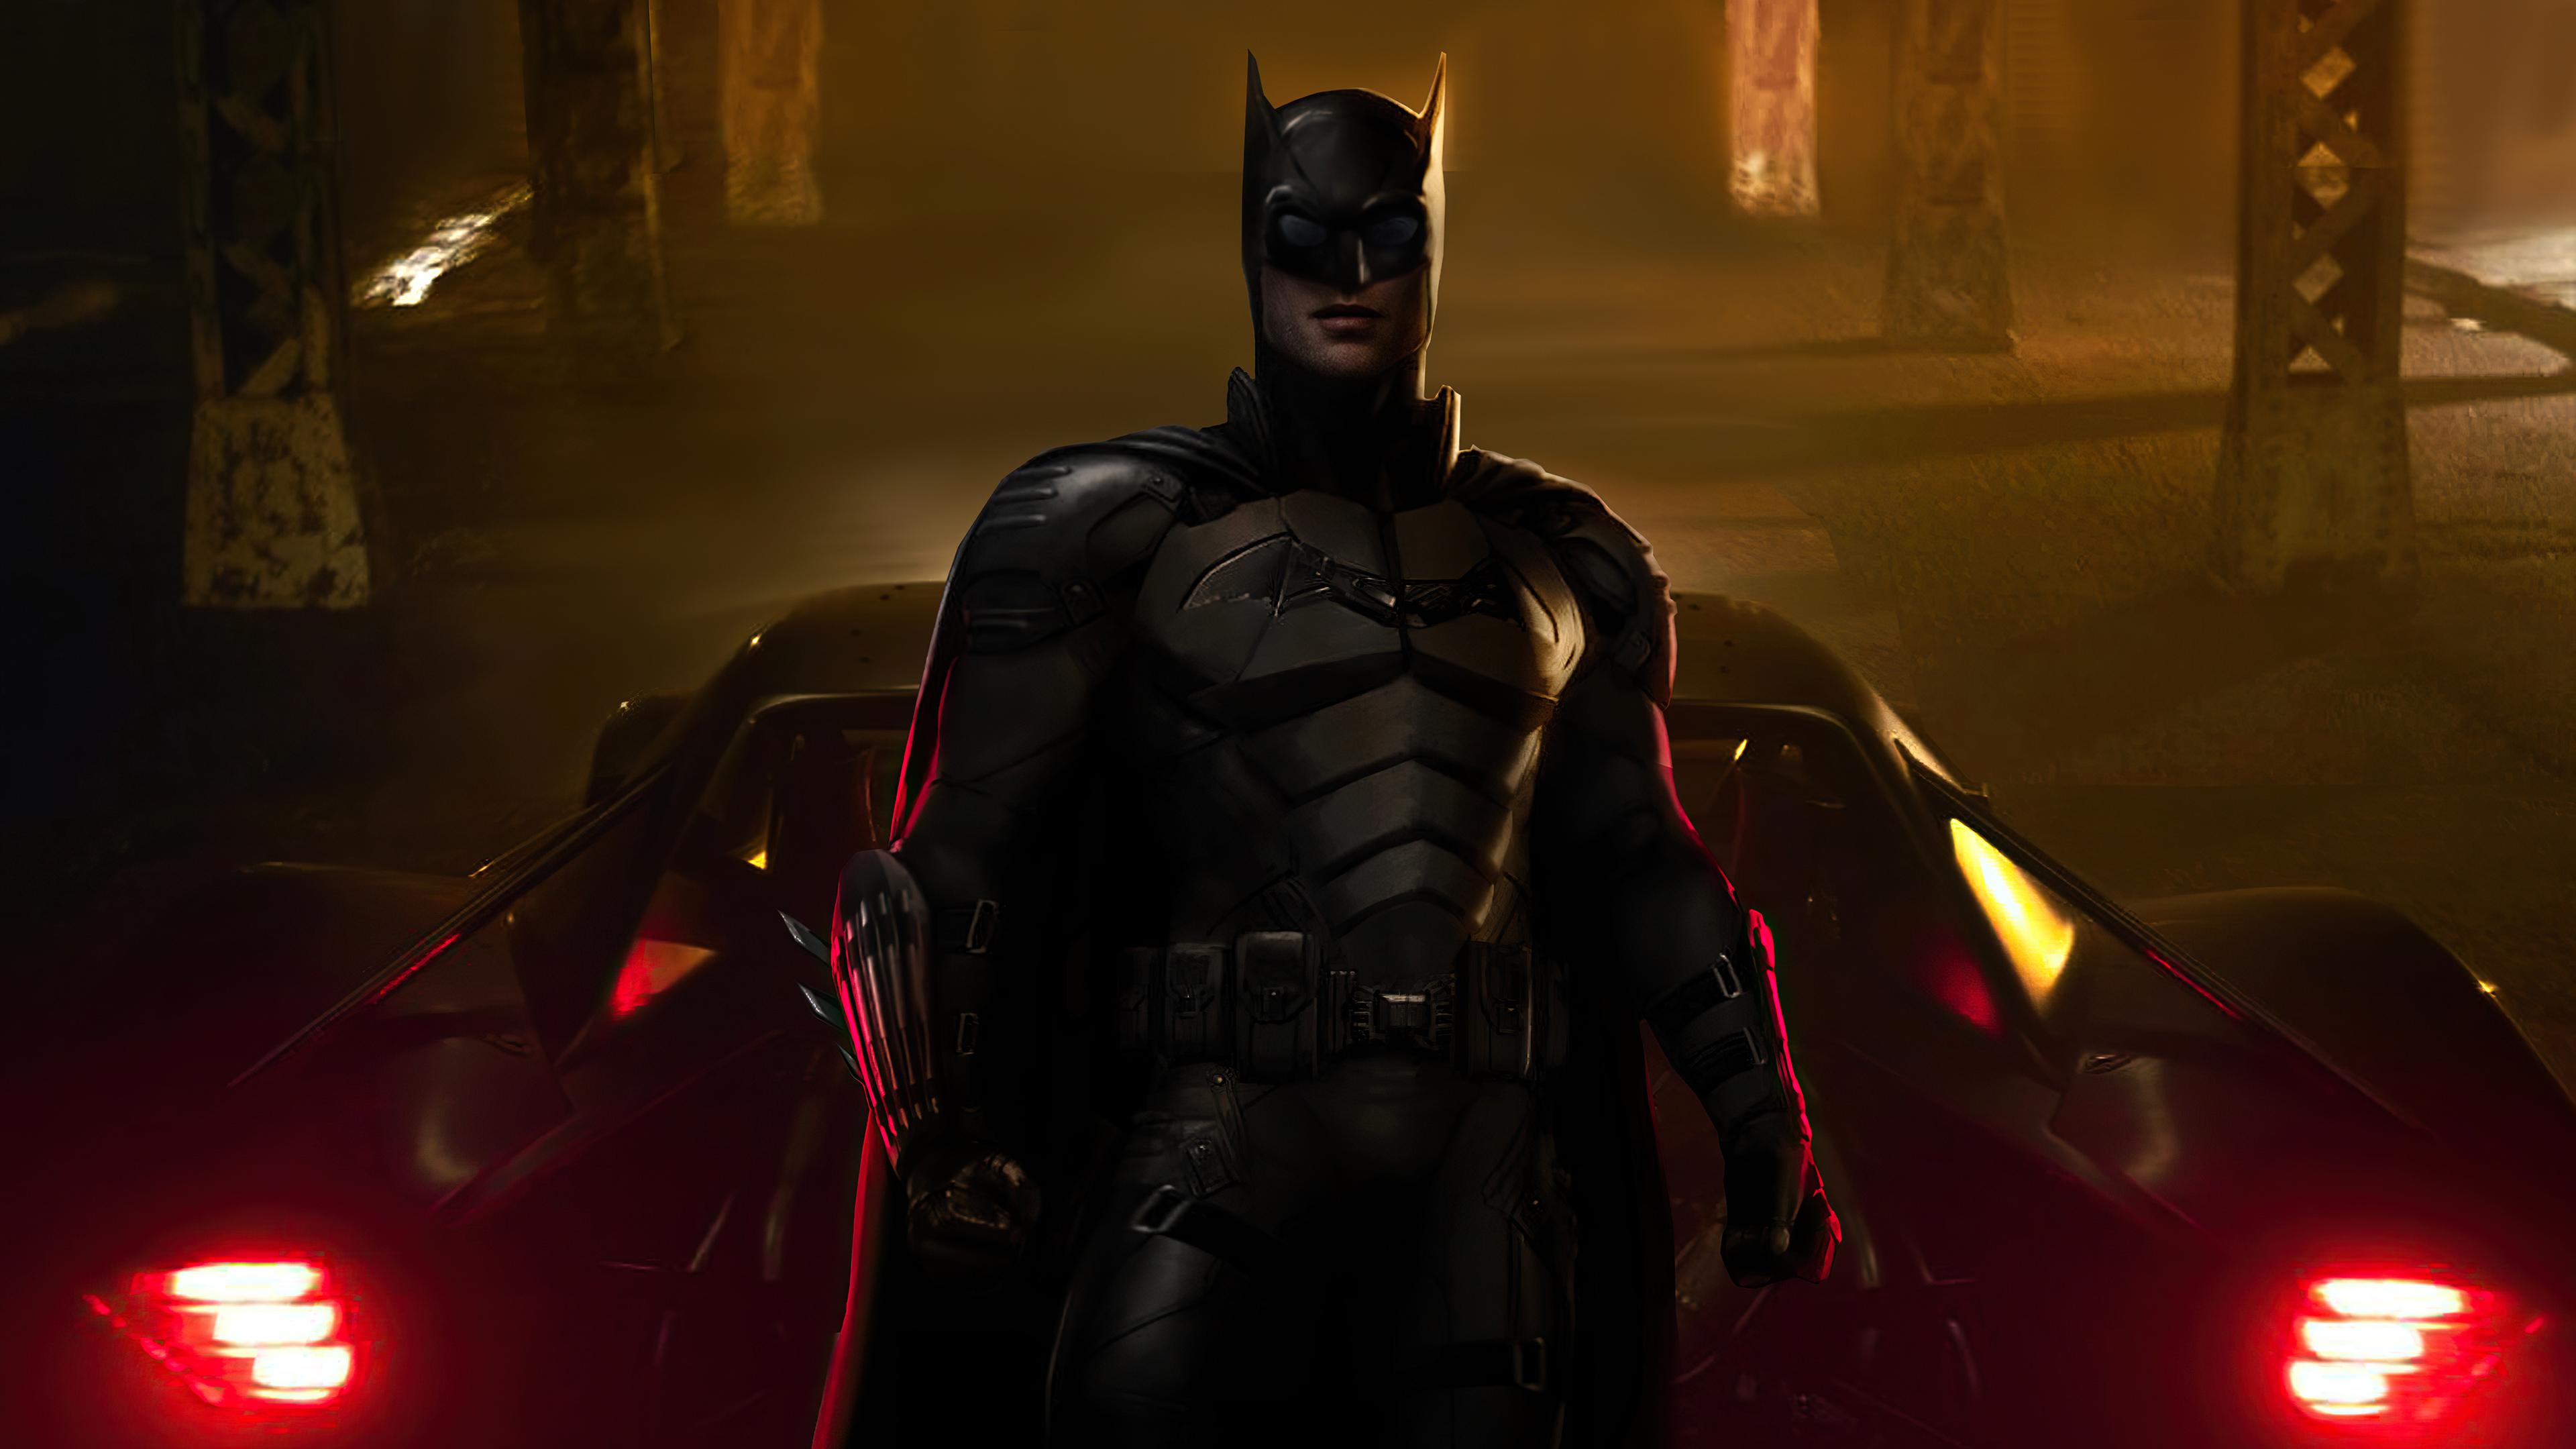 batman with muscle bat car 4k 1616959657 - Batman With Muscle Bat Car 4k - Batman With Muscle Bat Car 4k wallpapers